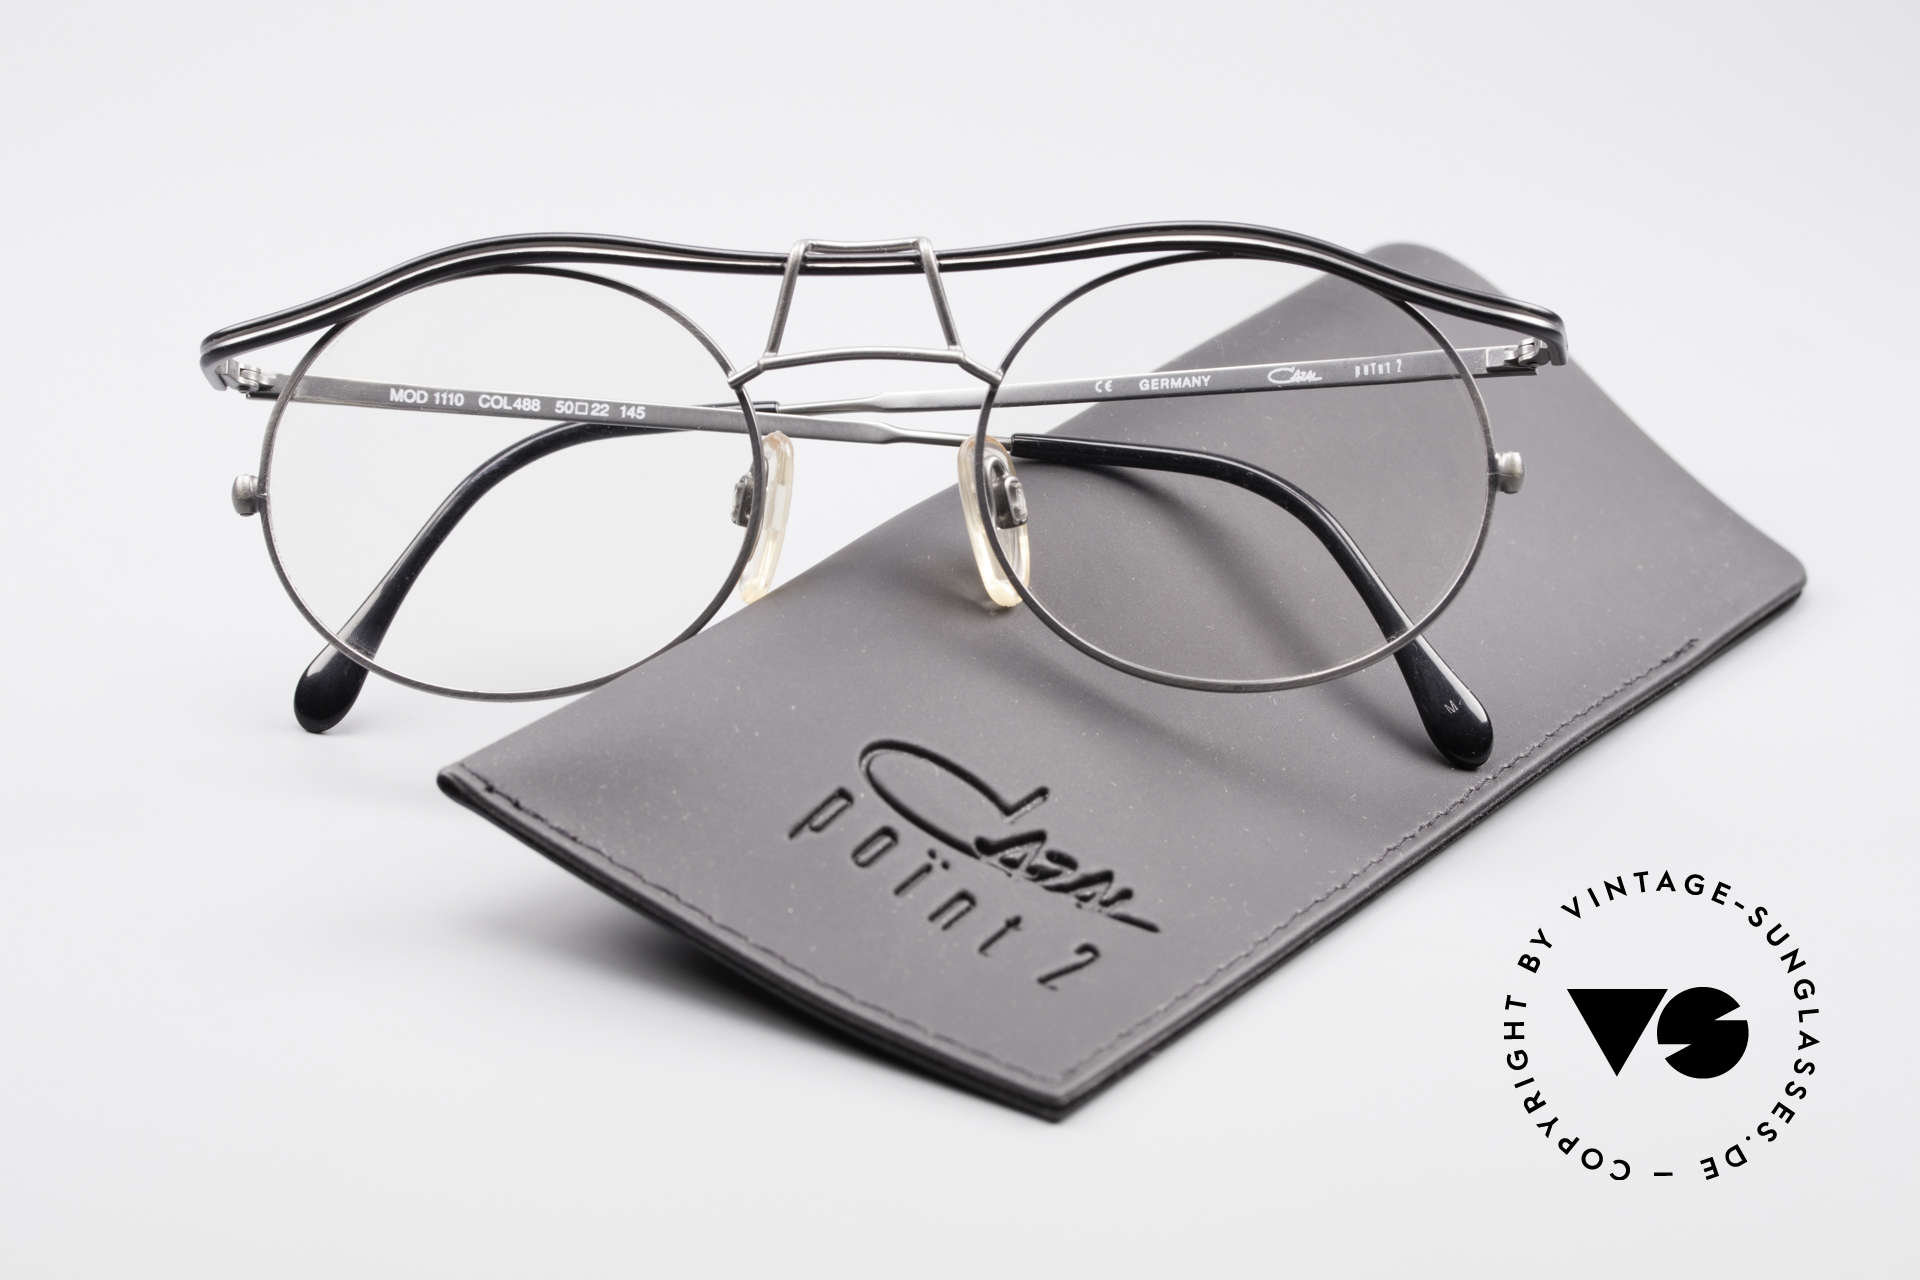 Cazal 1110 - Point 2 90's Industrial Vintage Frame, the frame is made for lenses of any kind (optical / sun), Made for Men